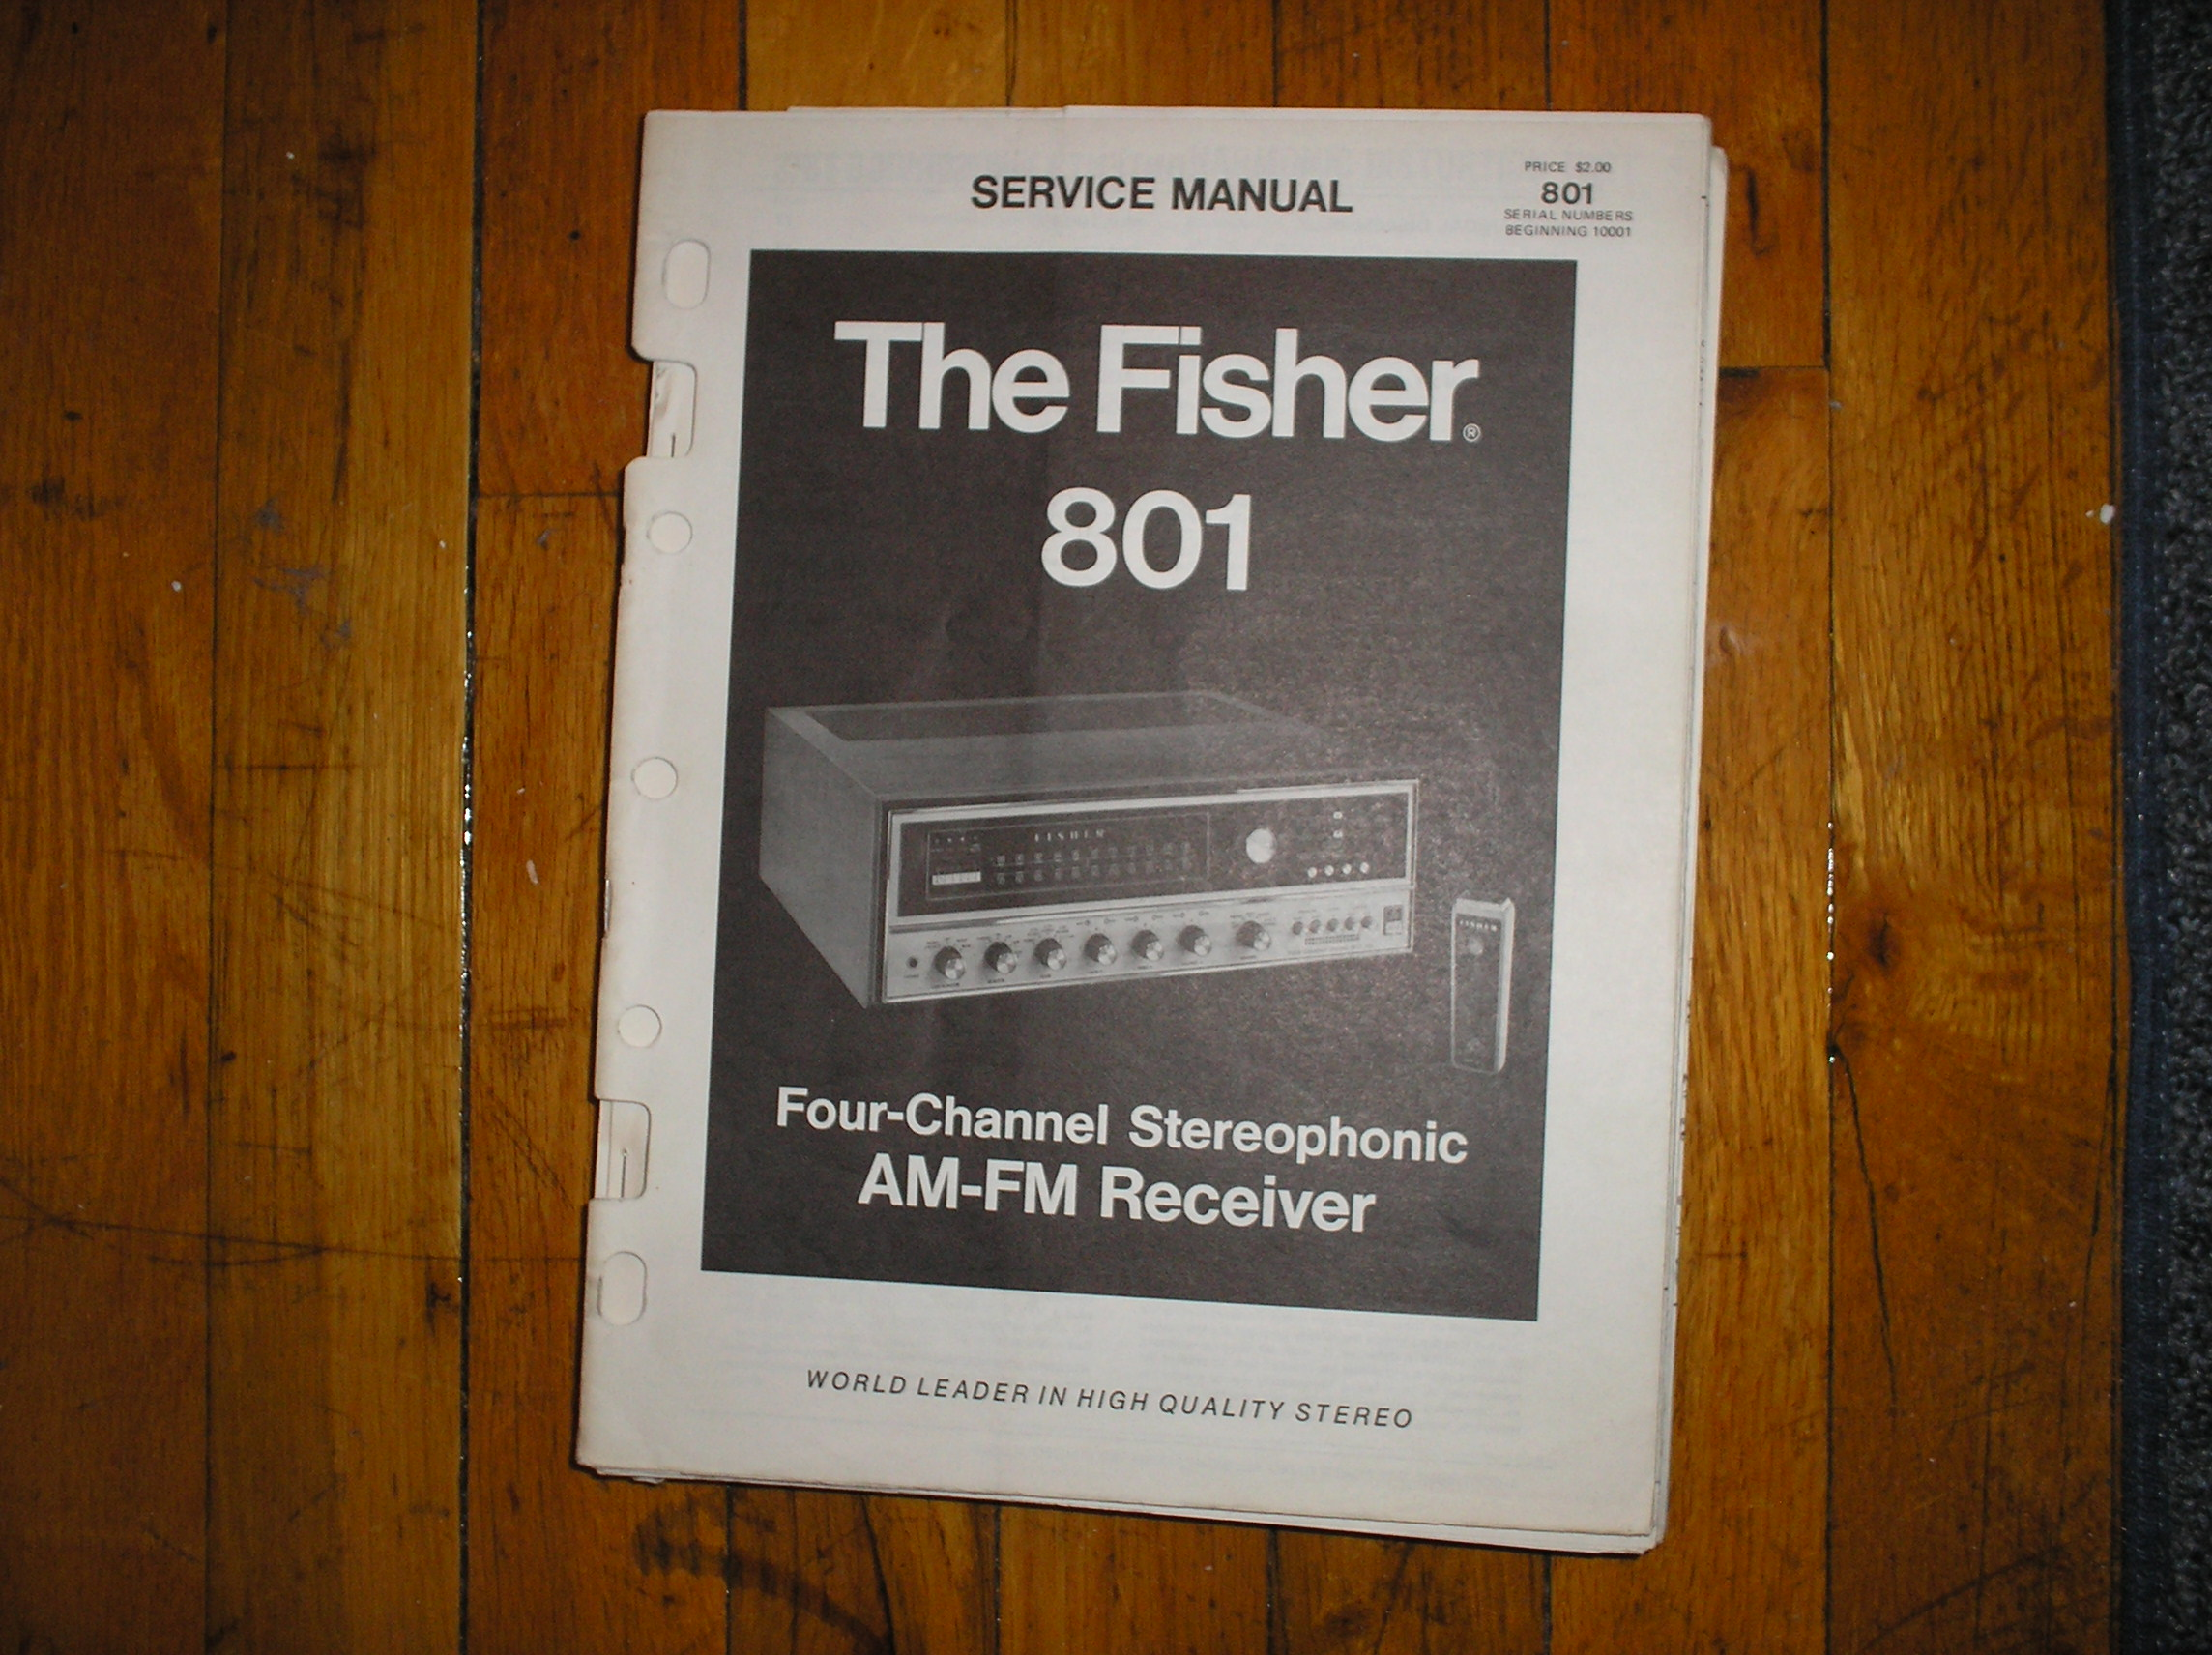 801 Receiver Service Manual